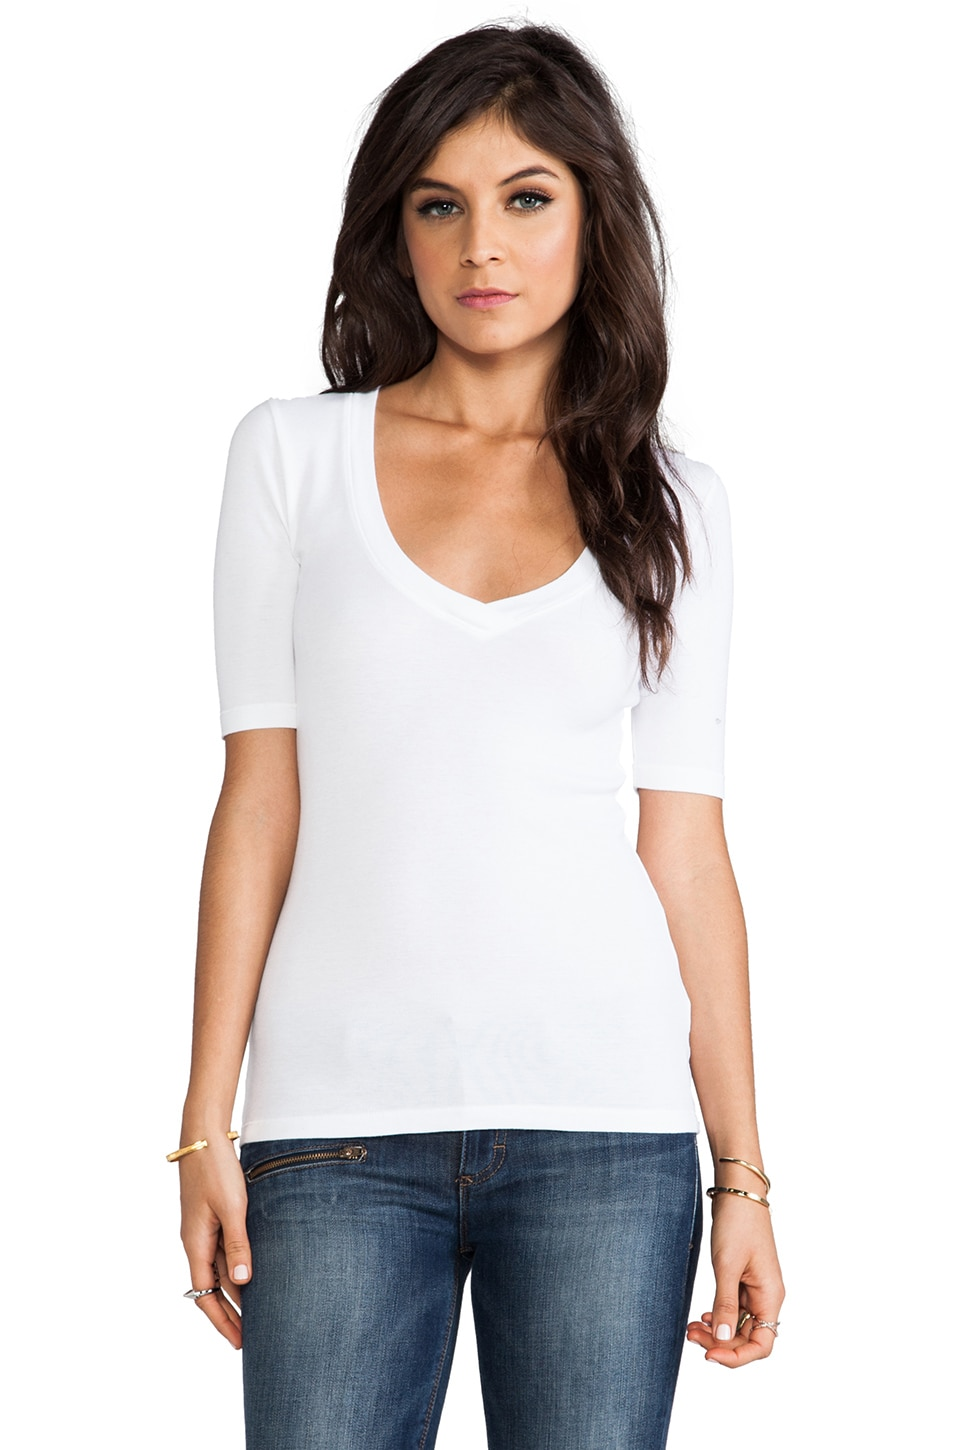 Splendid 1x1 V Neck in White